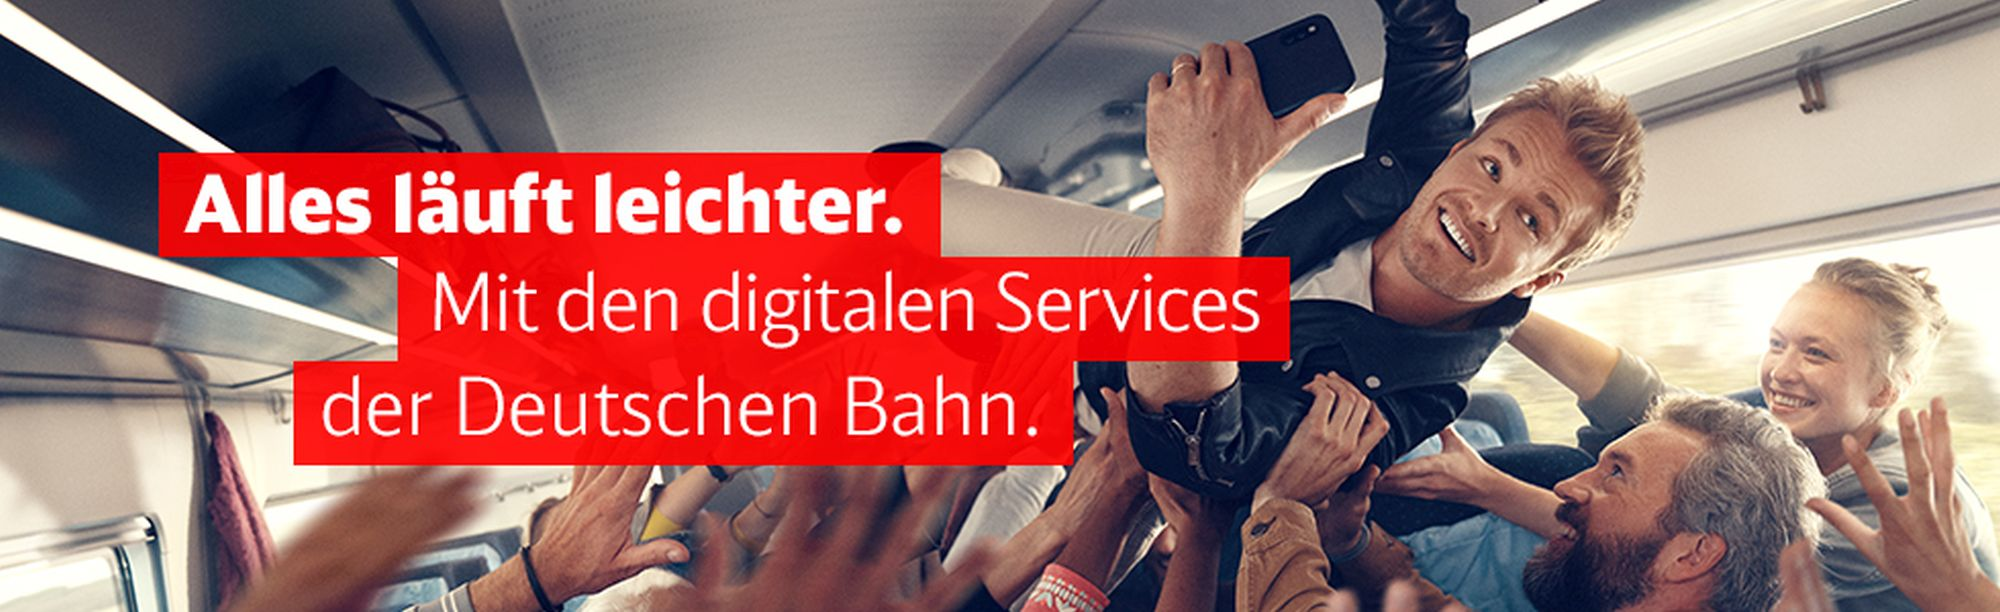 180730_DB_Corporate_bahn.de_980x300px2